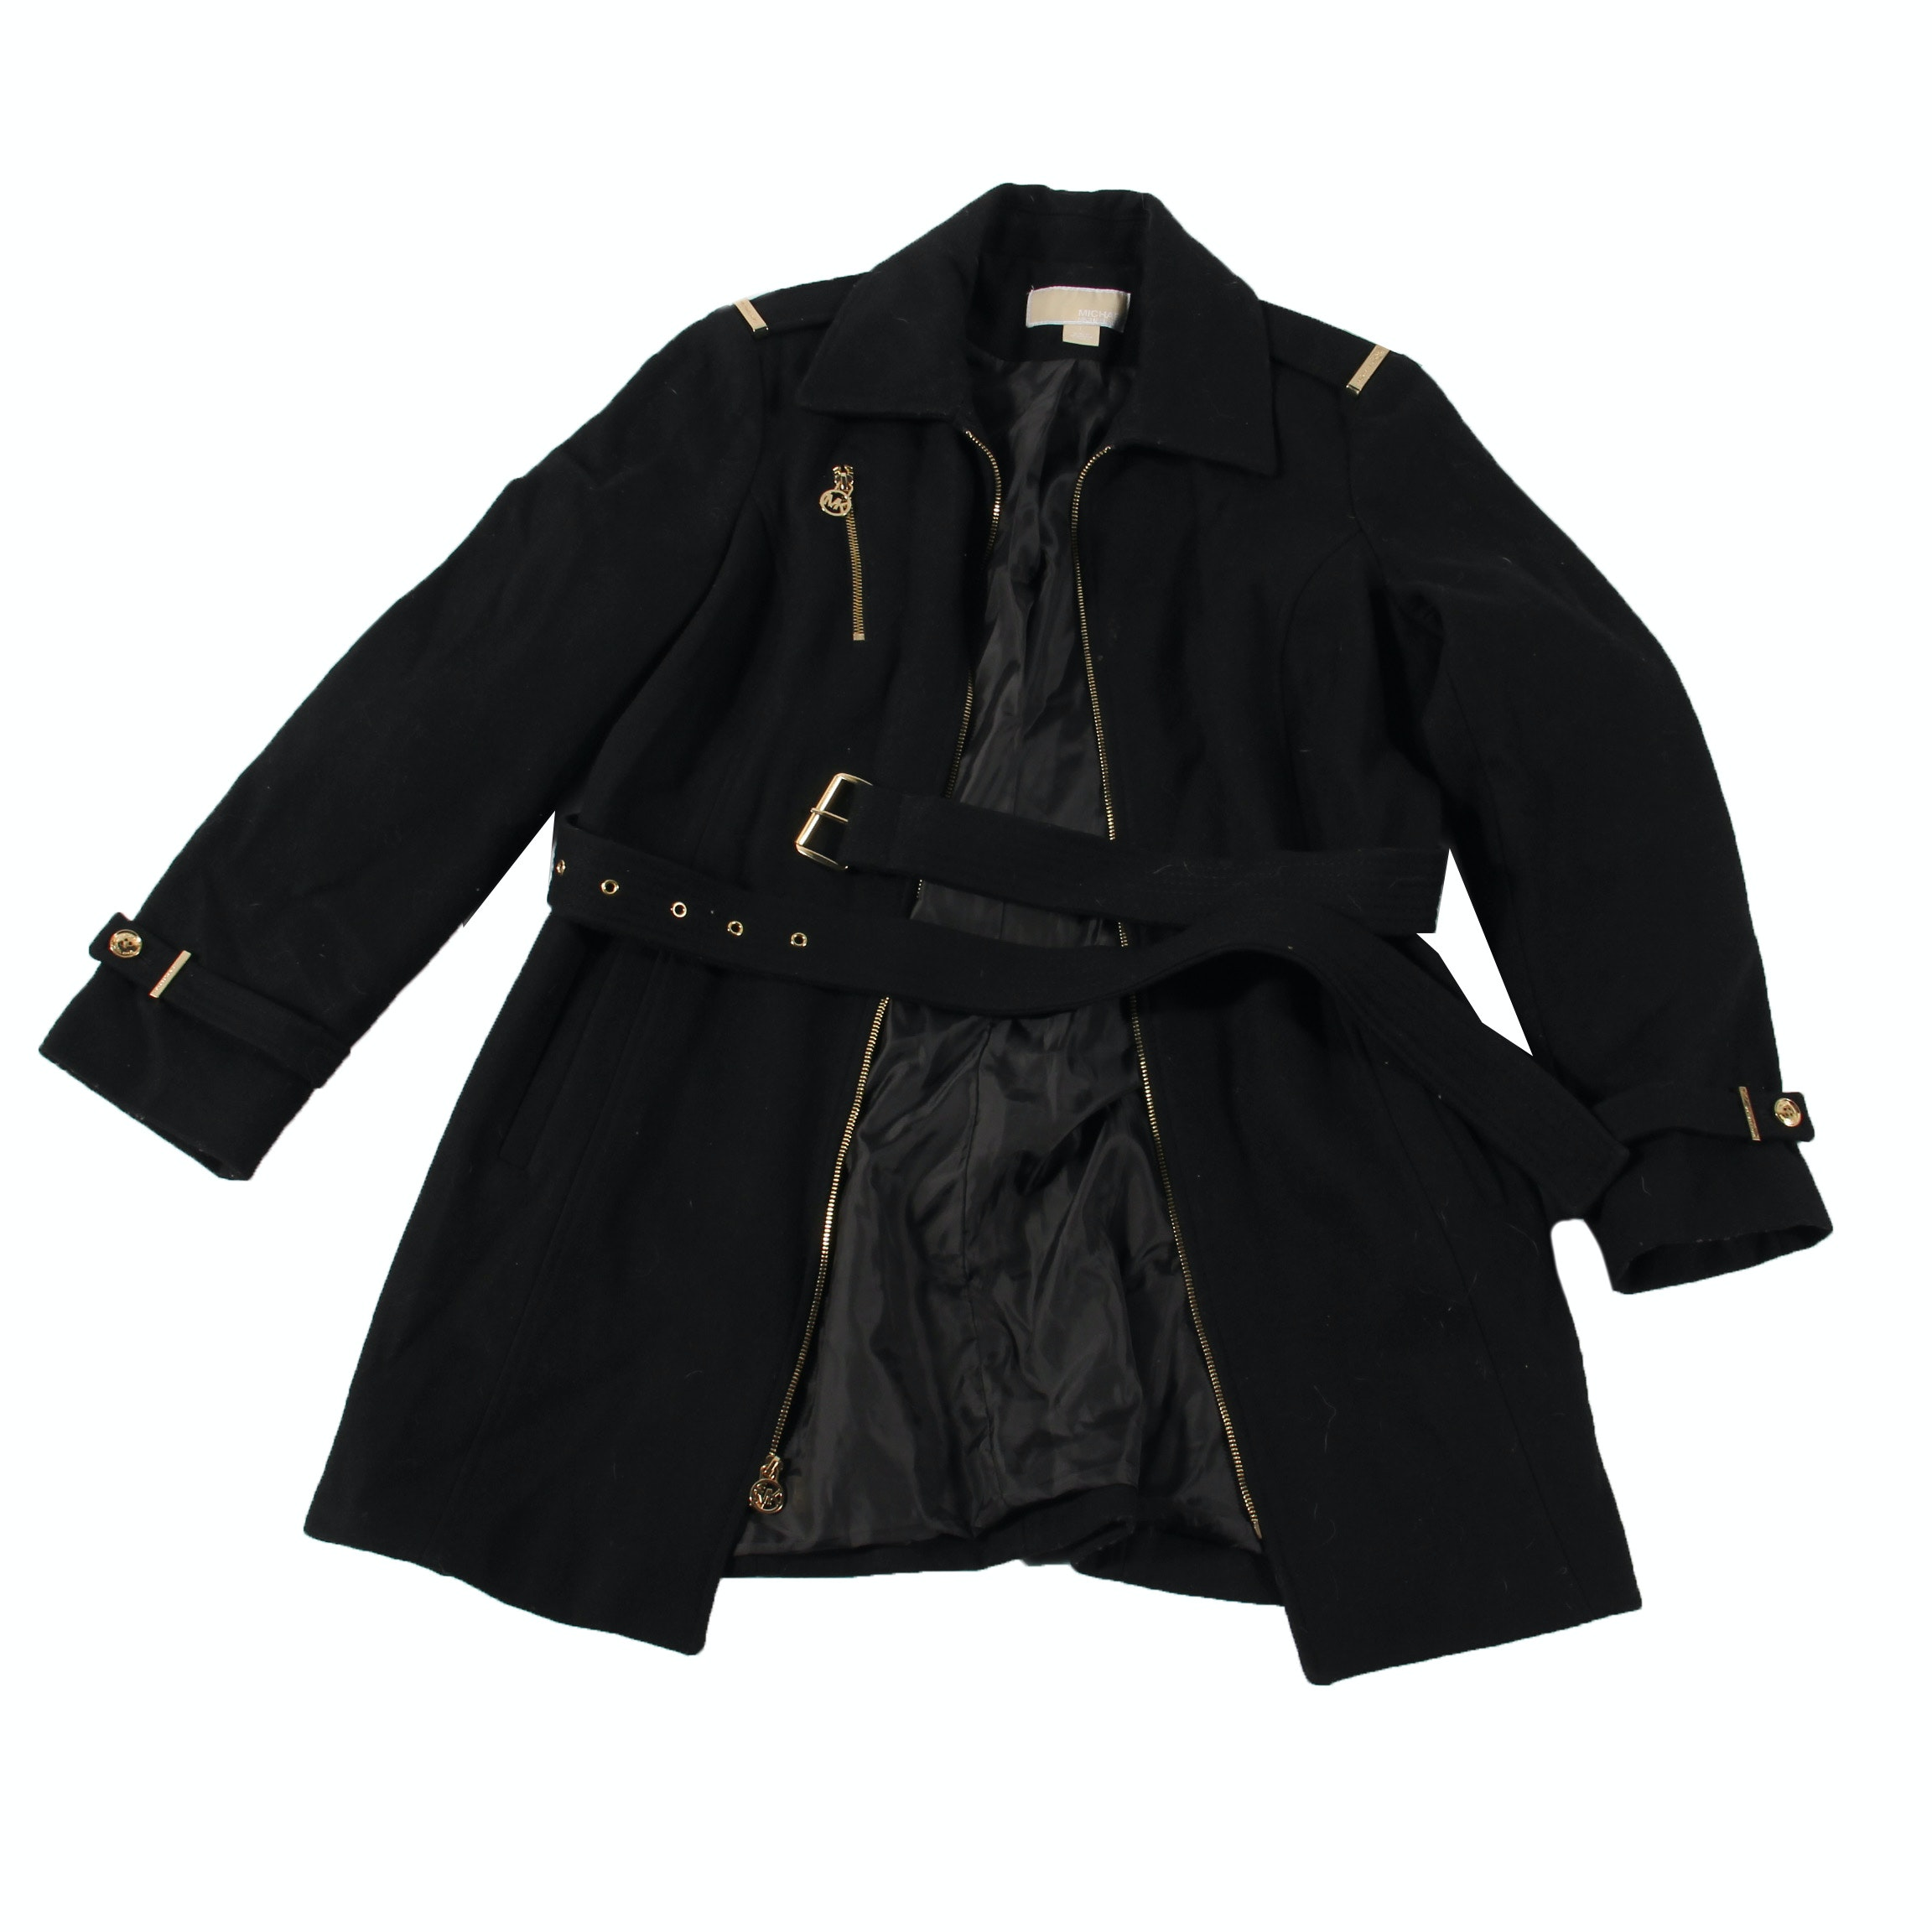 Women's MICHAEL Michael Kors Black Wool Blend Coat